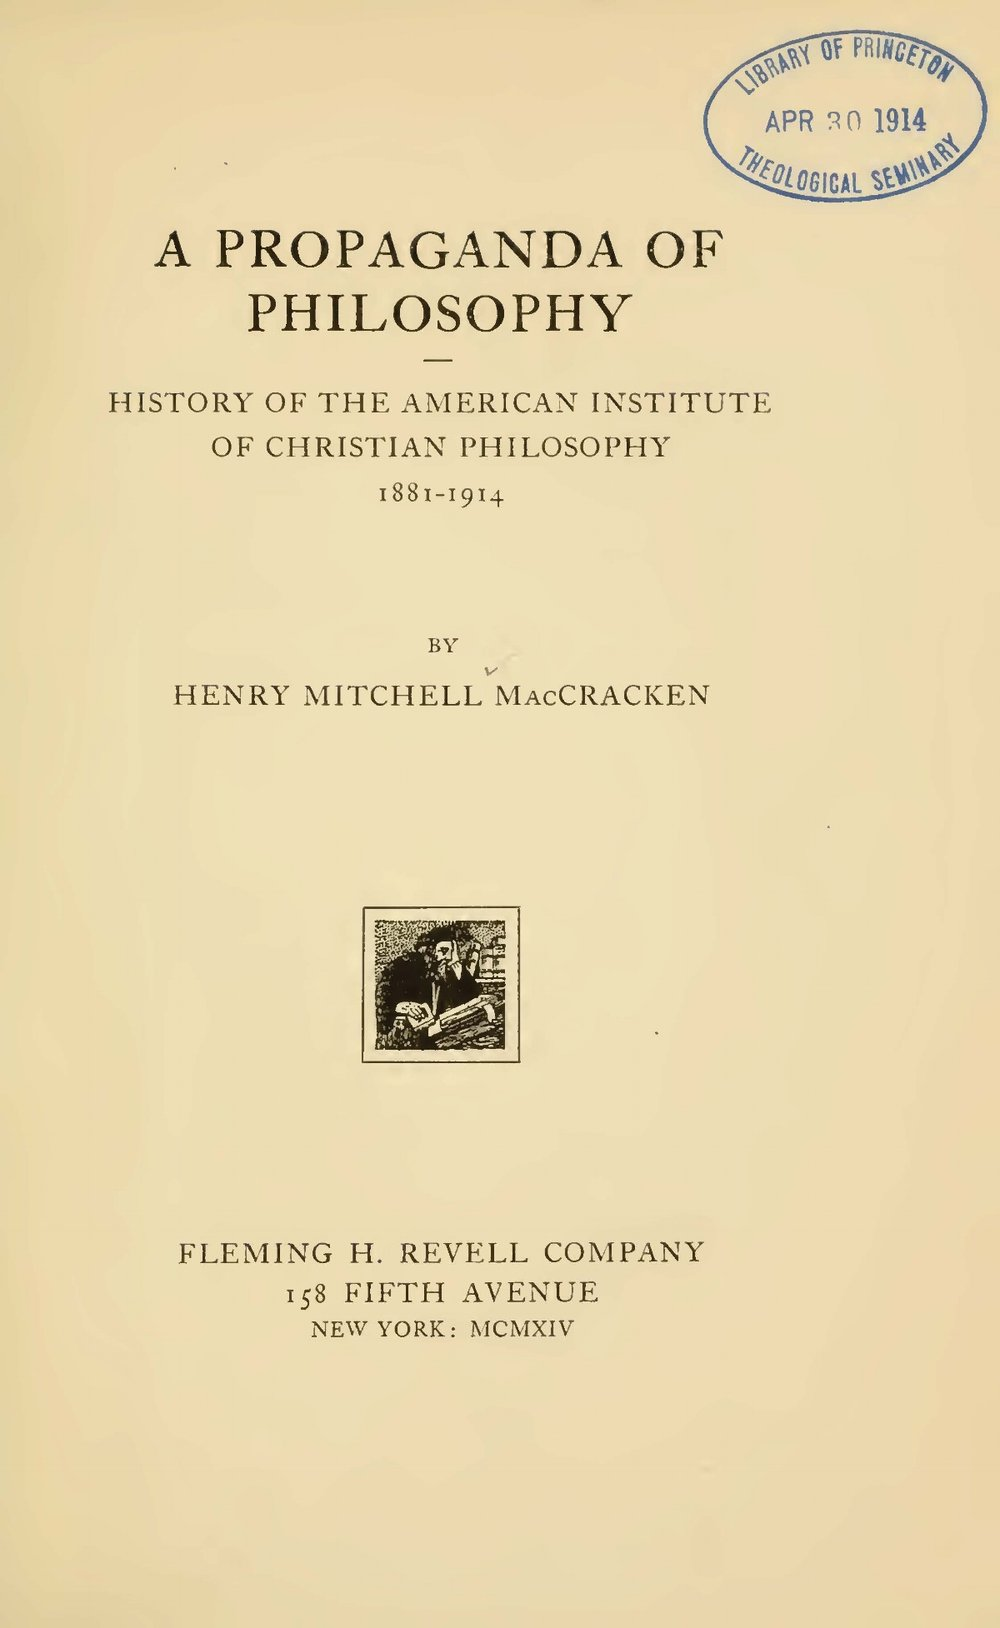 MacCracken, Henry Mitchell, A Propoganda of Philosophy Title Page.jpg